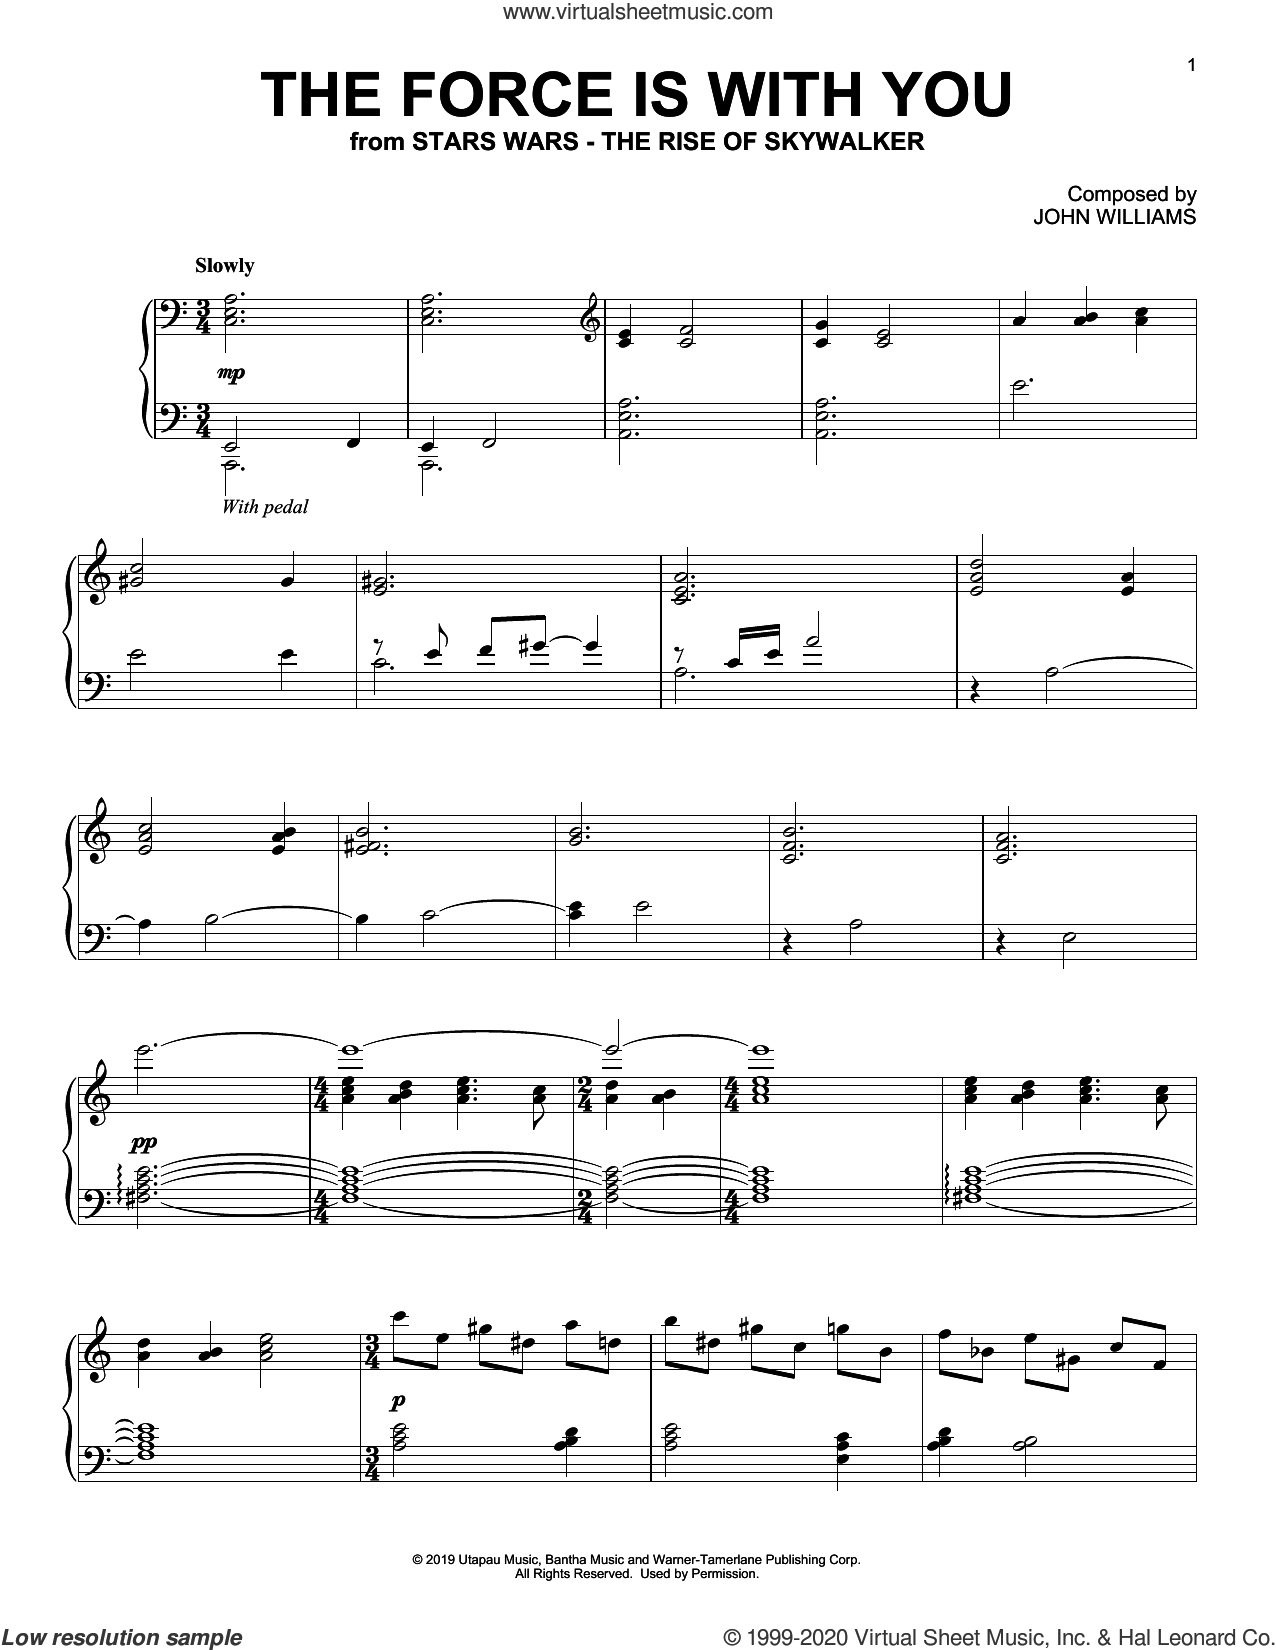 The Force Is With You (from The Rise Of Skywalker) sheet music for piano solo by John Williams, intermediate skill level